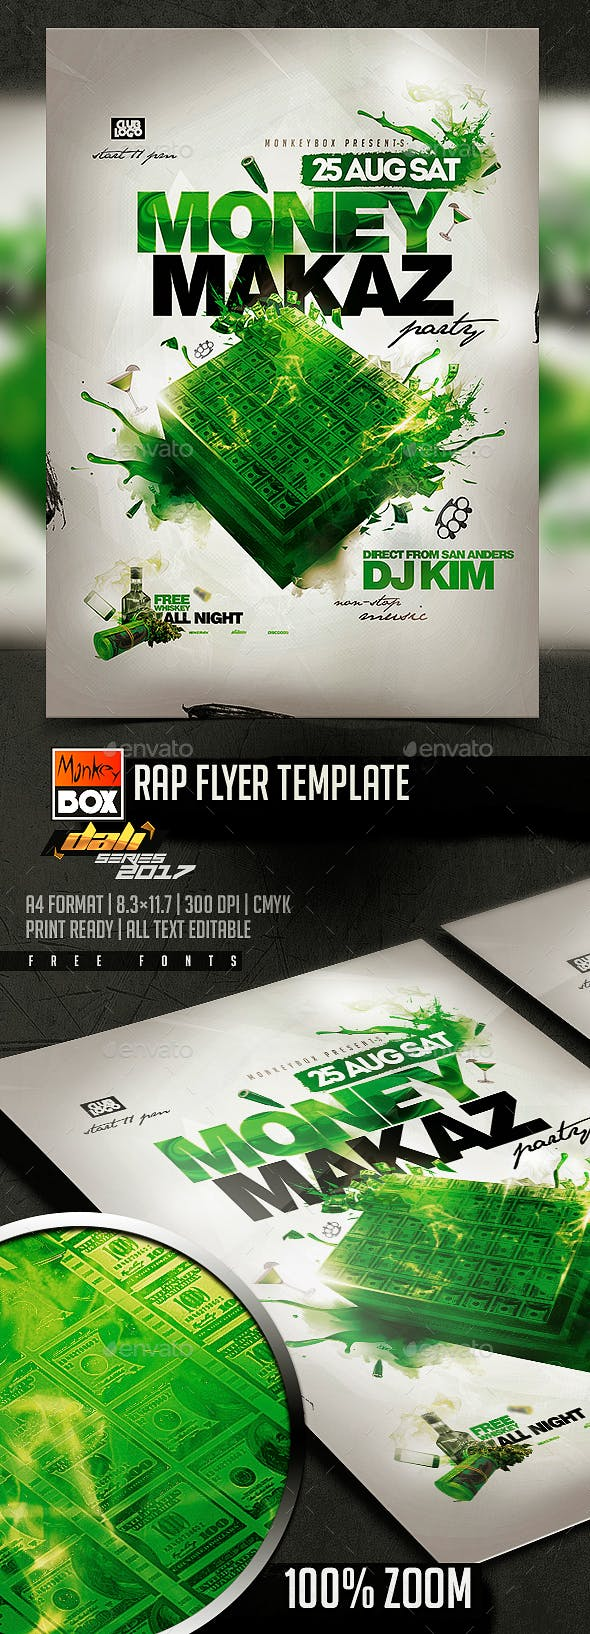 rap flyer template by monkeybox graphicriver